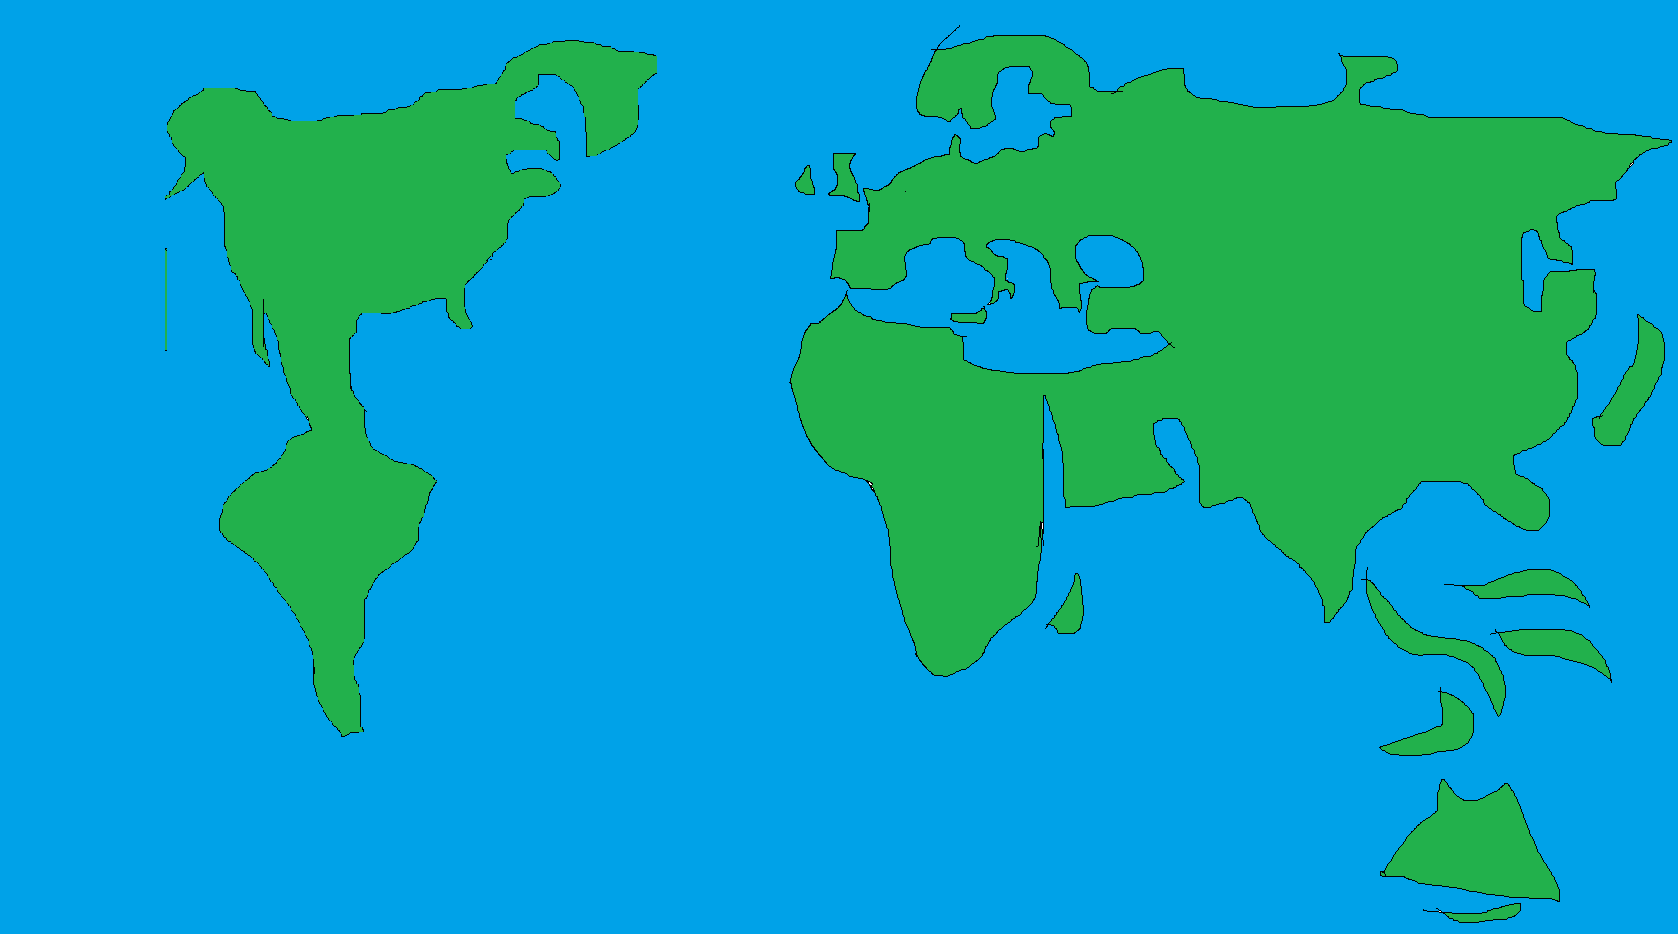 Image map of earth hideously distortedg alternative history map of earth hideously distortedg gumiabroncs Image collections